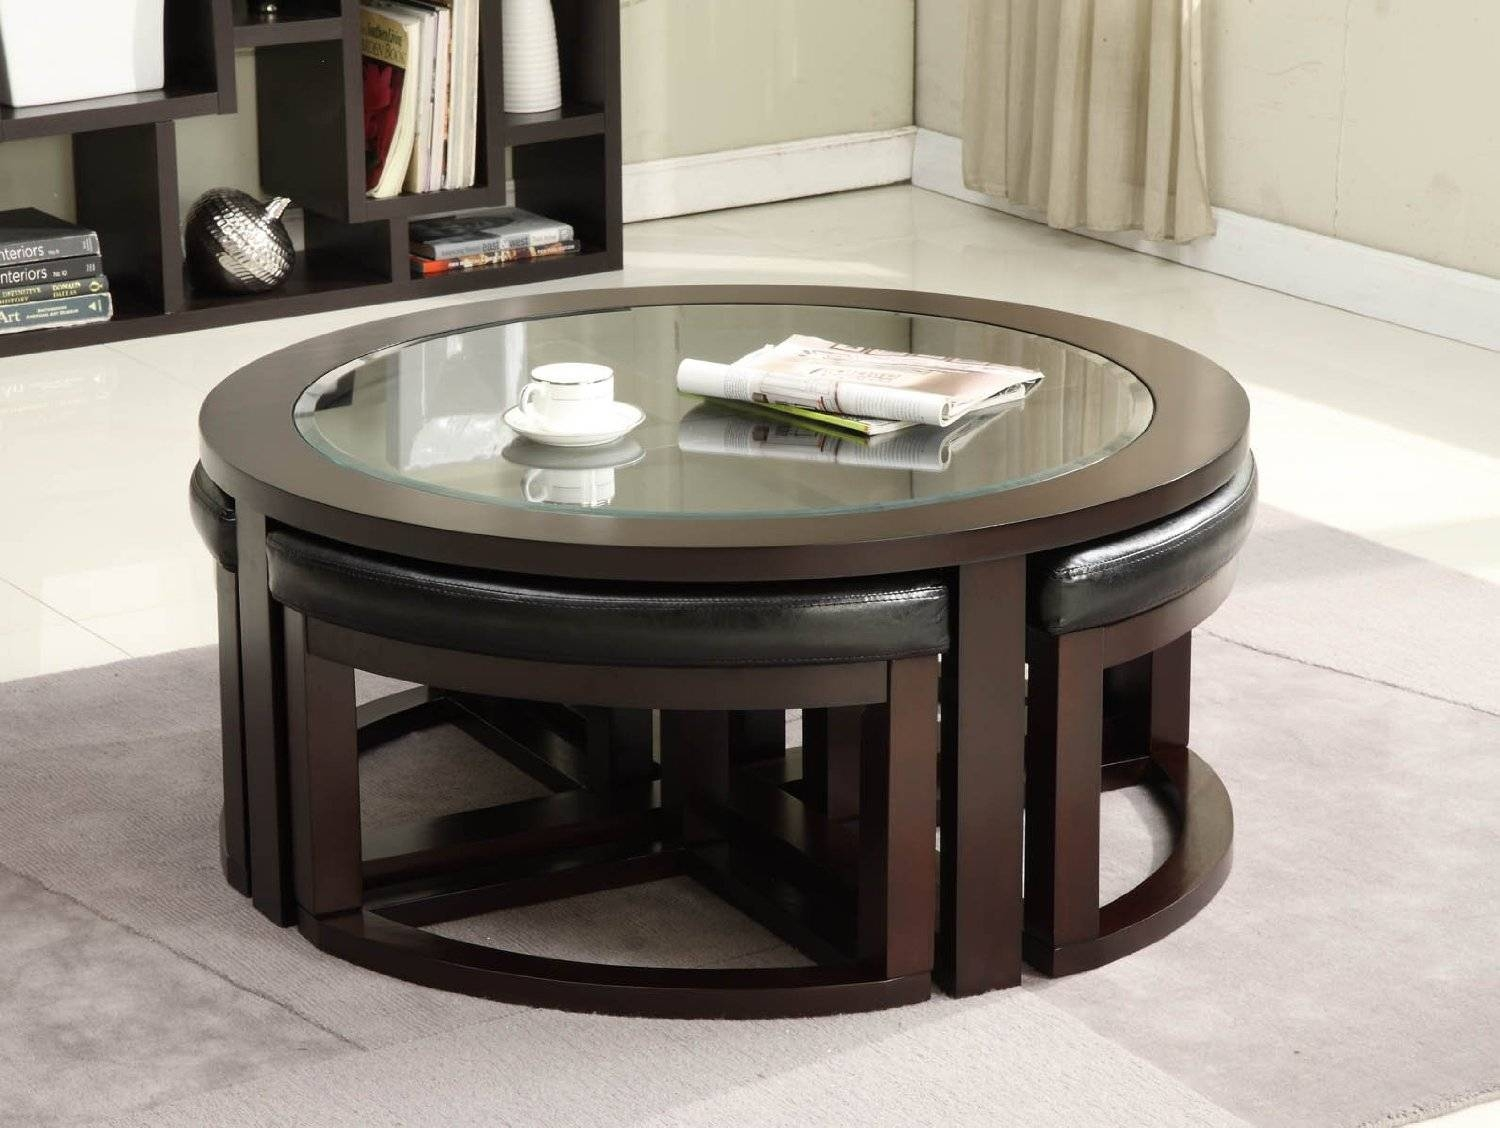 Glass Coffee Tables: Astounding Unique Samples Glass Coffee Tables for Round Wood and Glass Coffee Tables (Image 7 of 15)